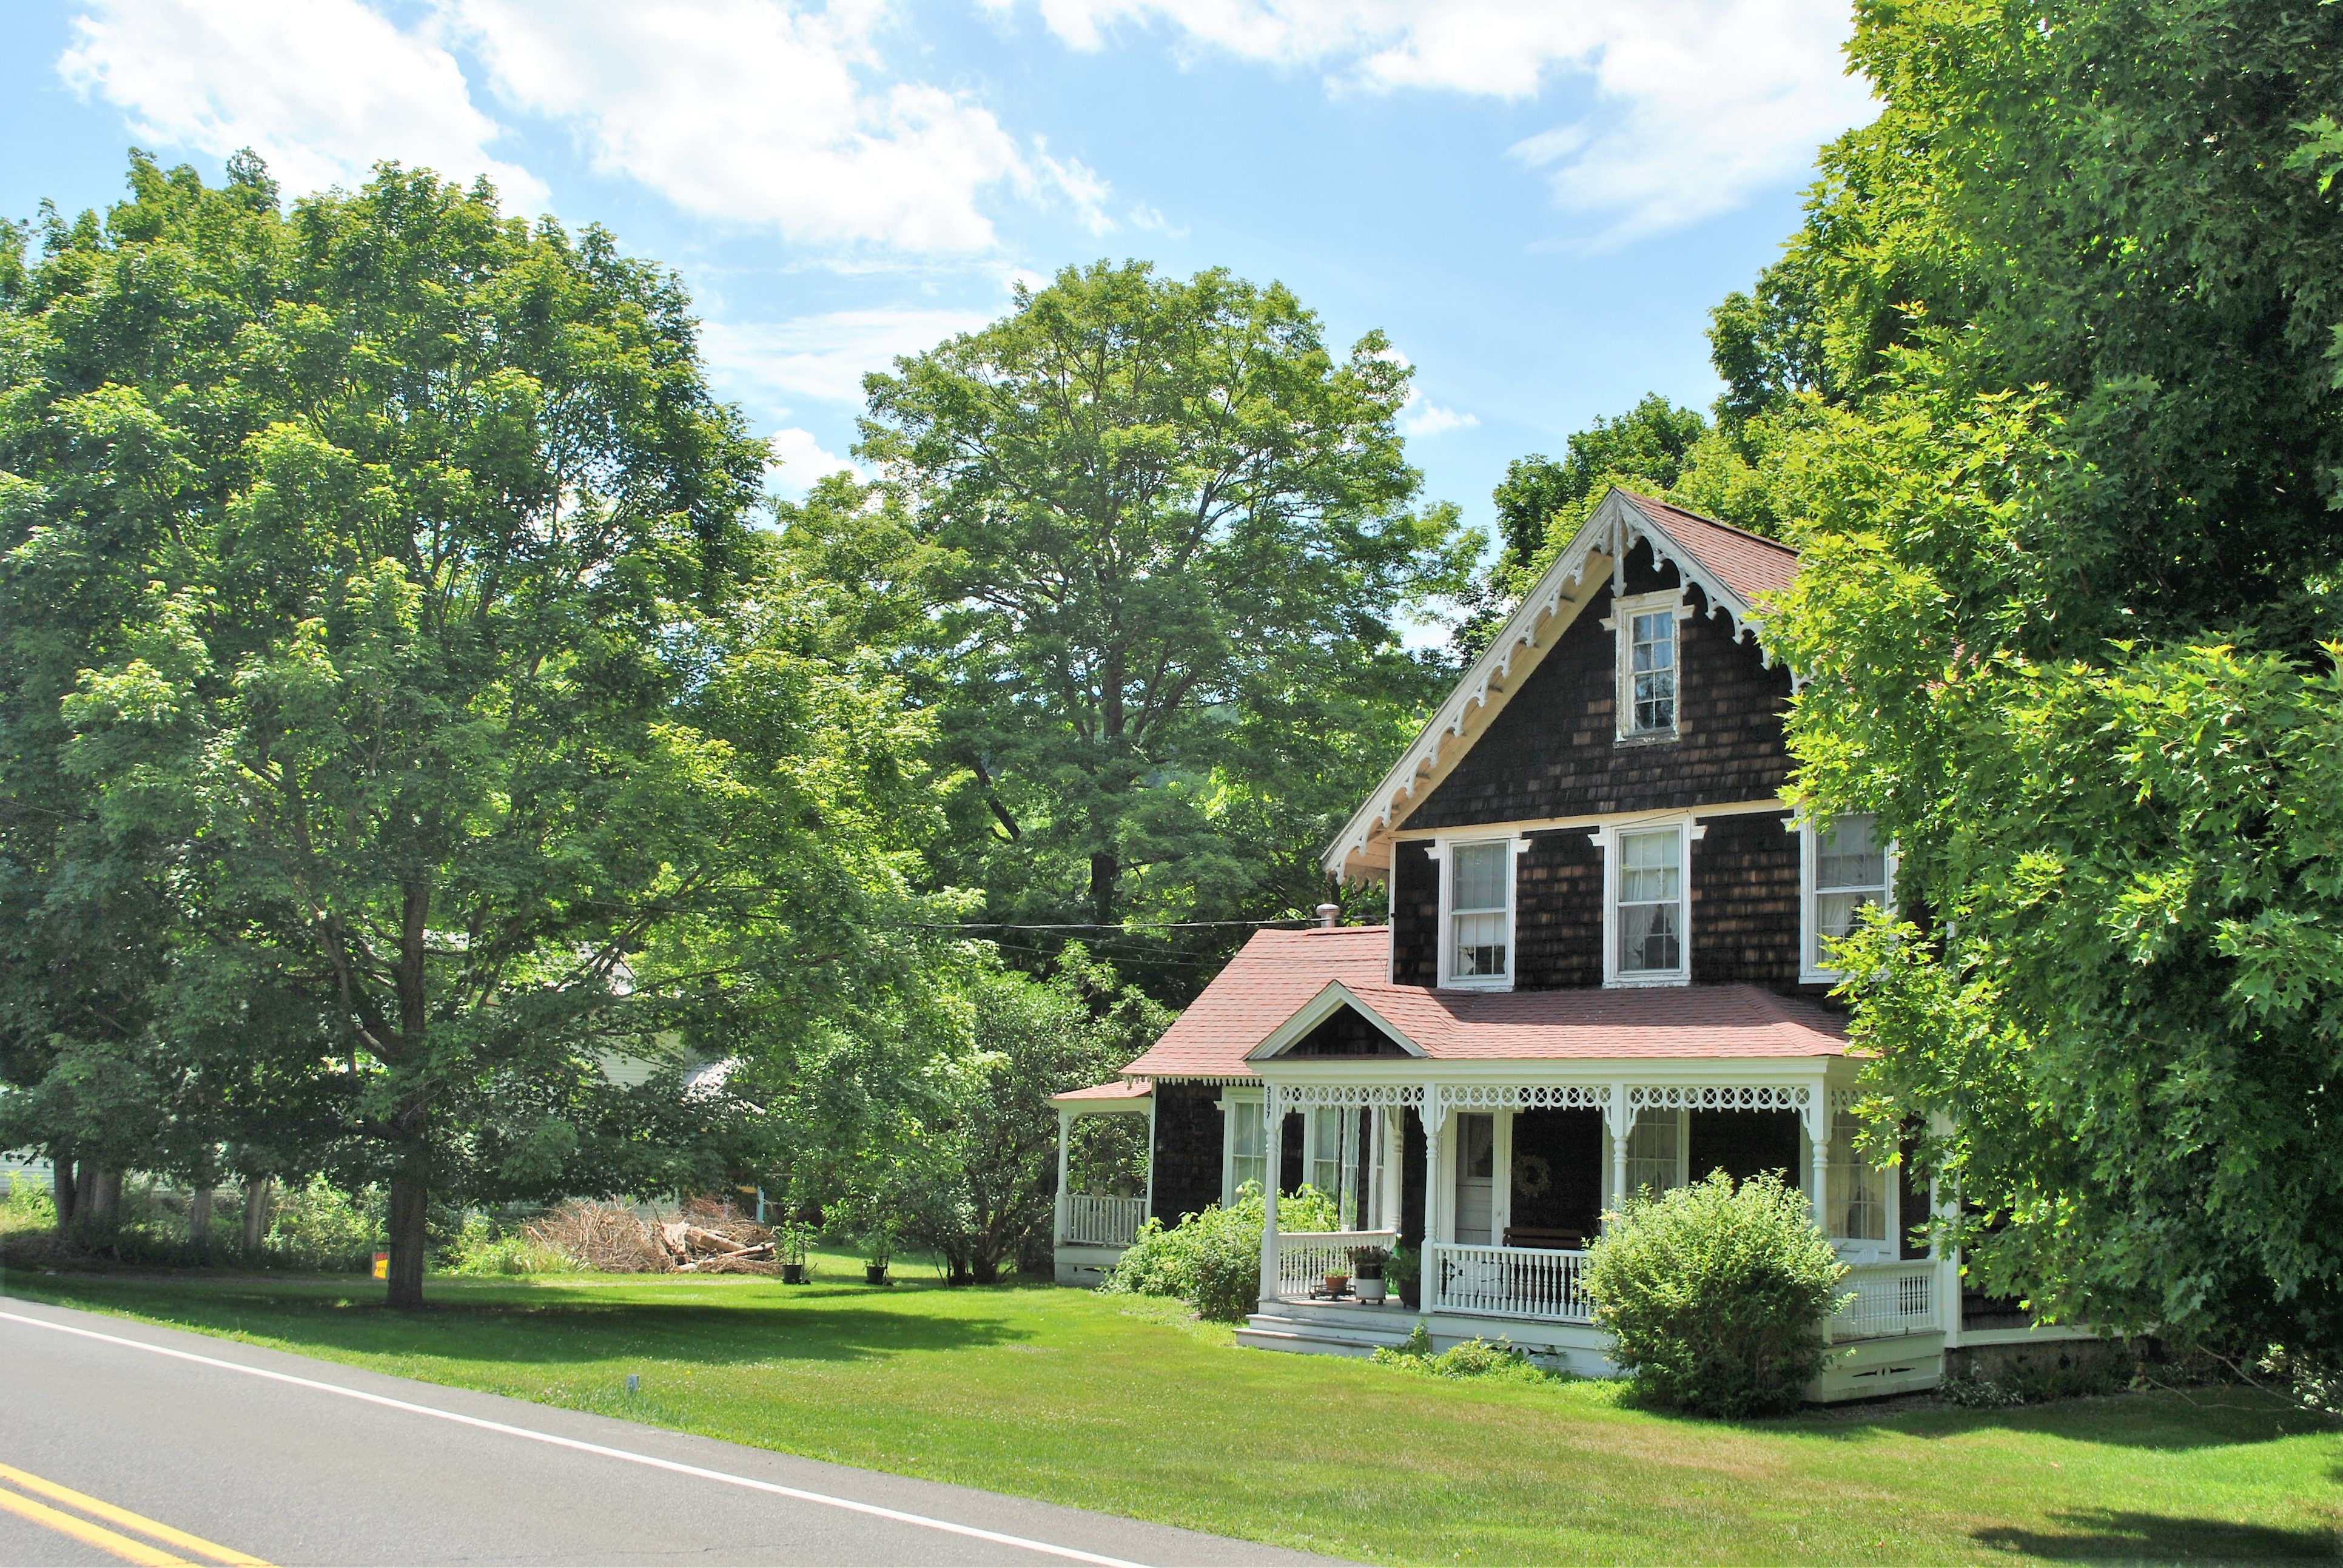 spencertown online dating Explore an array of spencertown, ny vacation rentals, including houses, cottages & more bookable online choose from more than 265 properties, ideal house rentals for families, groups and couples.